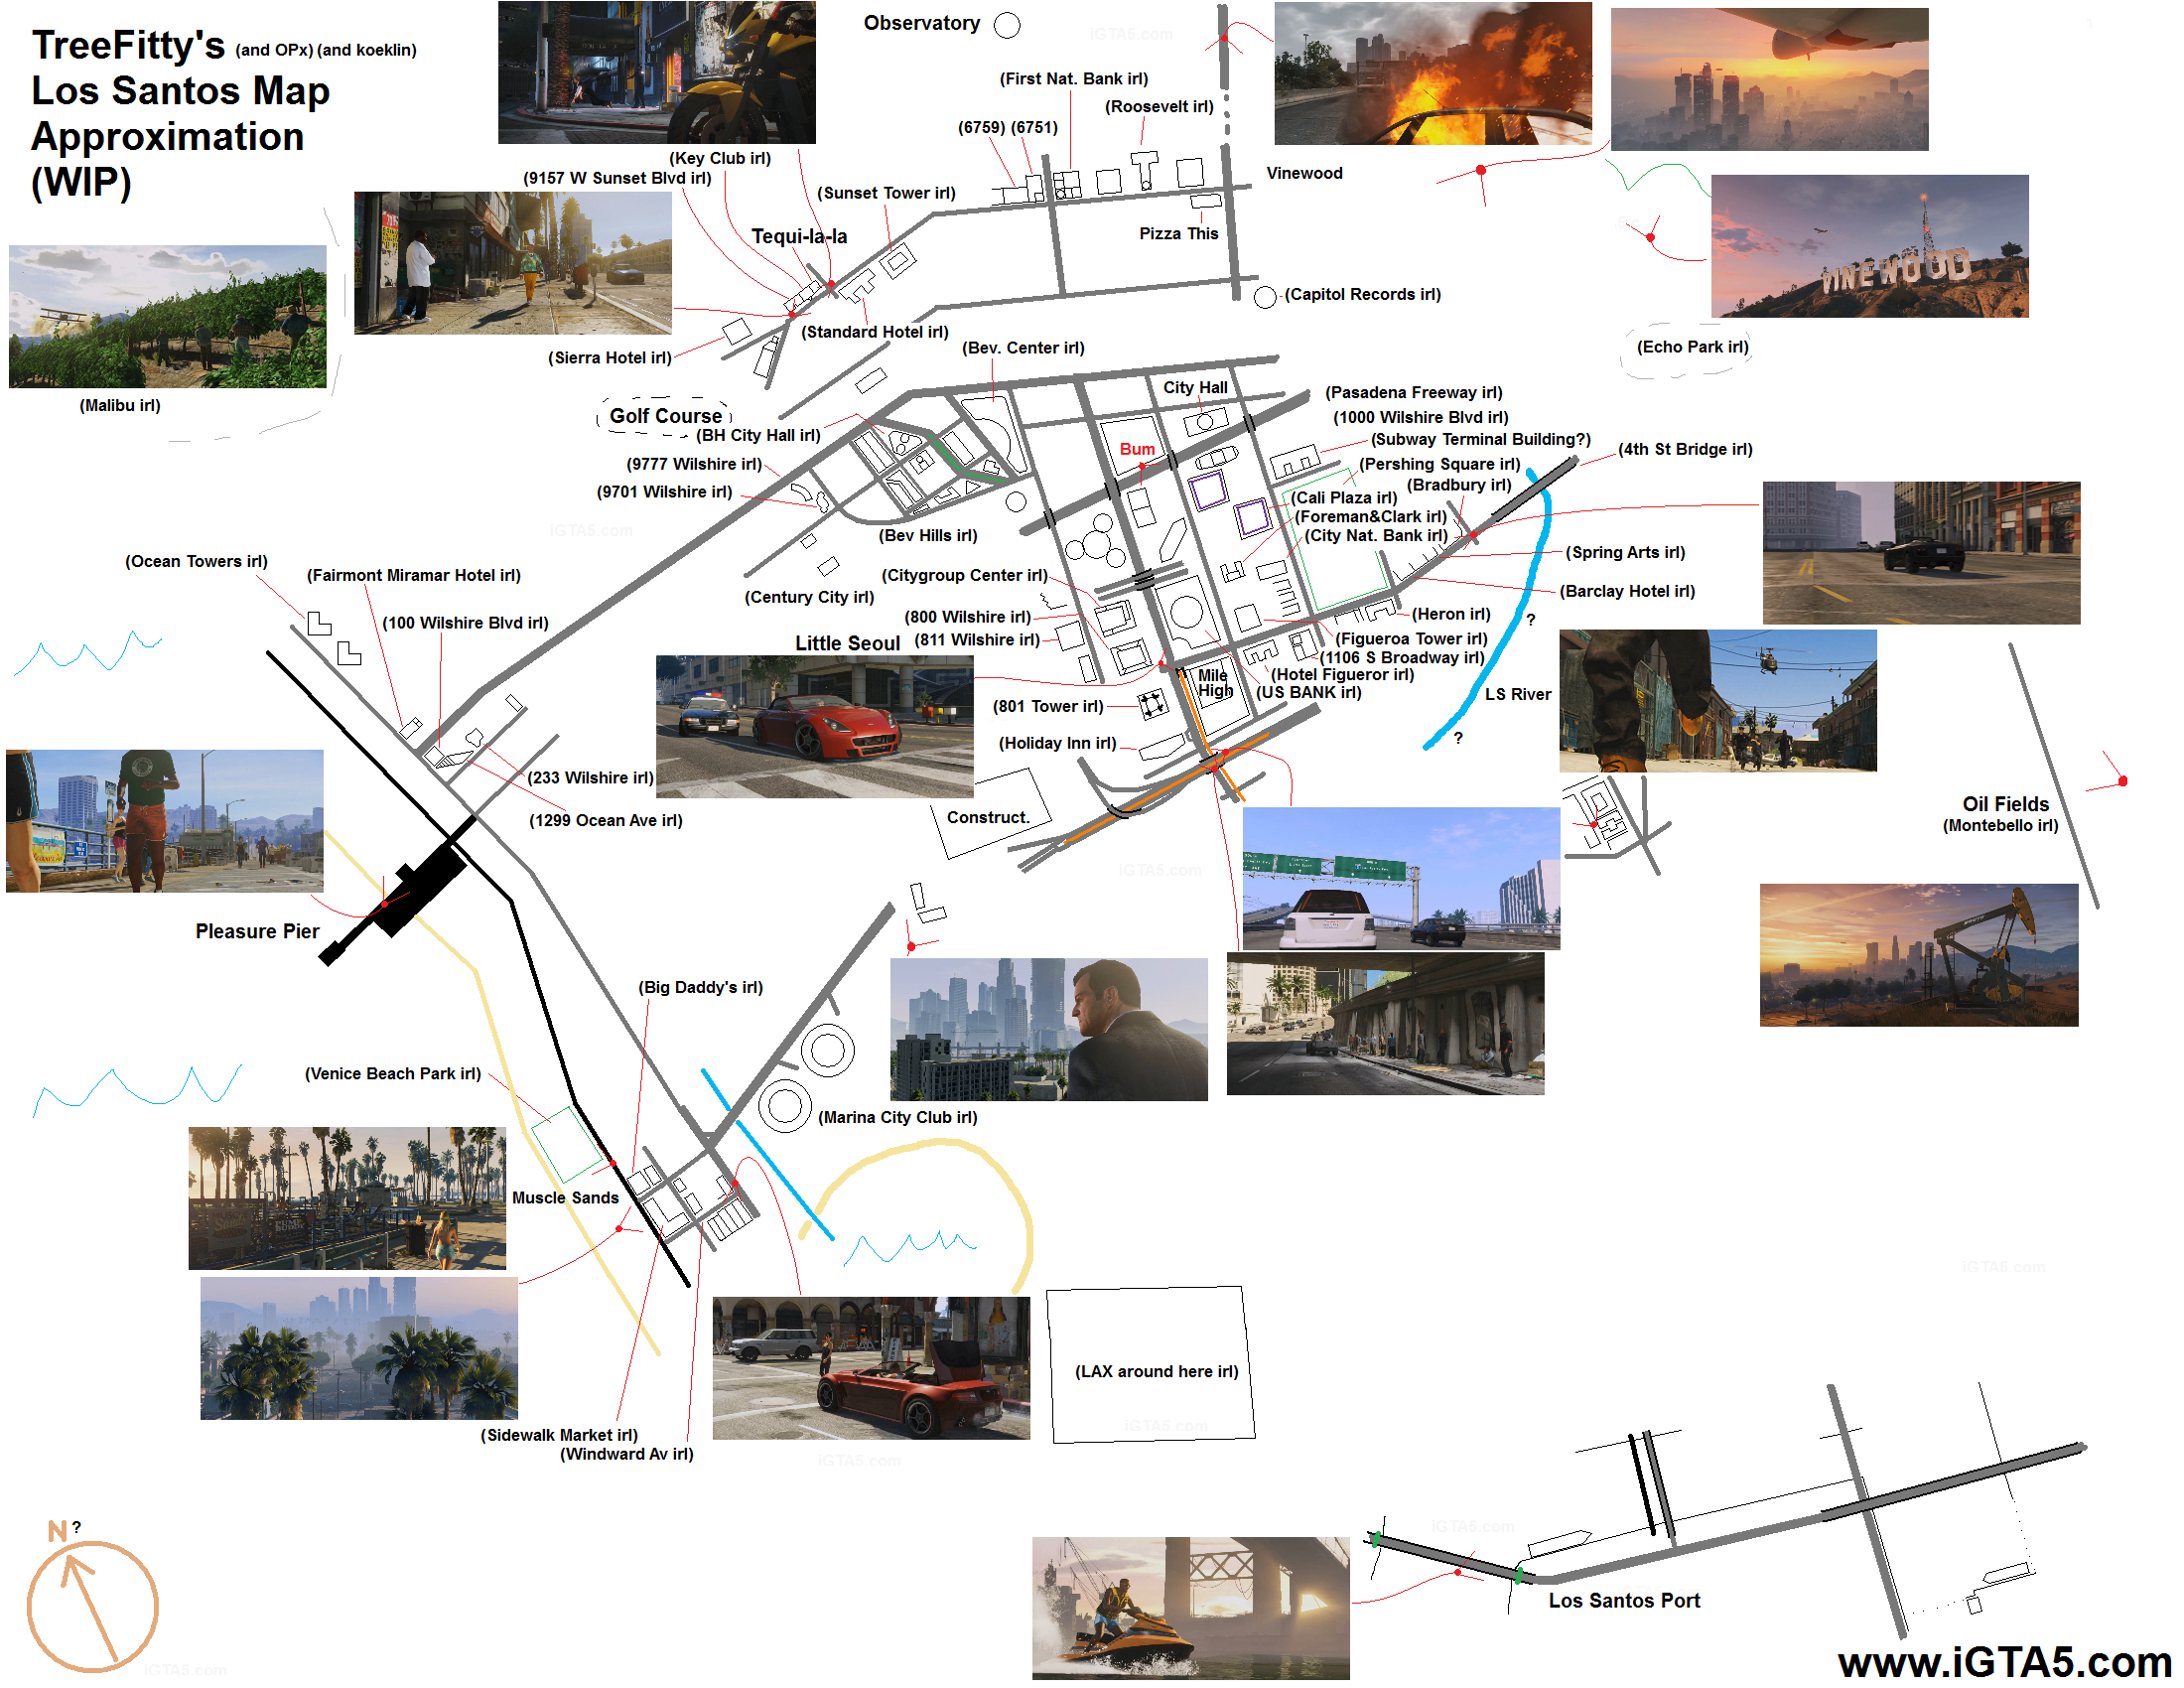 gta-v-los-santos-map-approx1.png